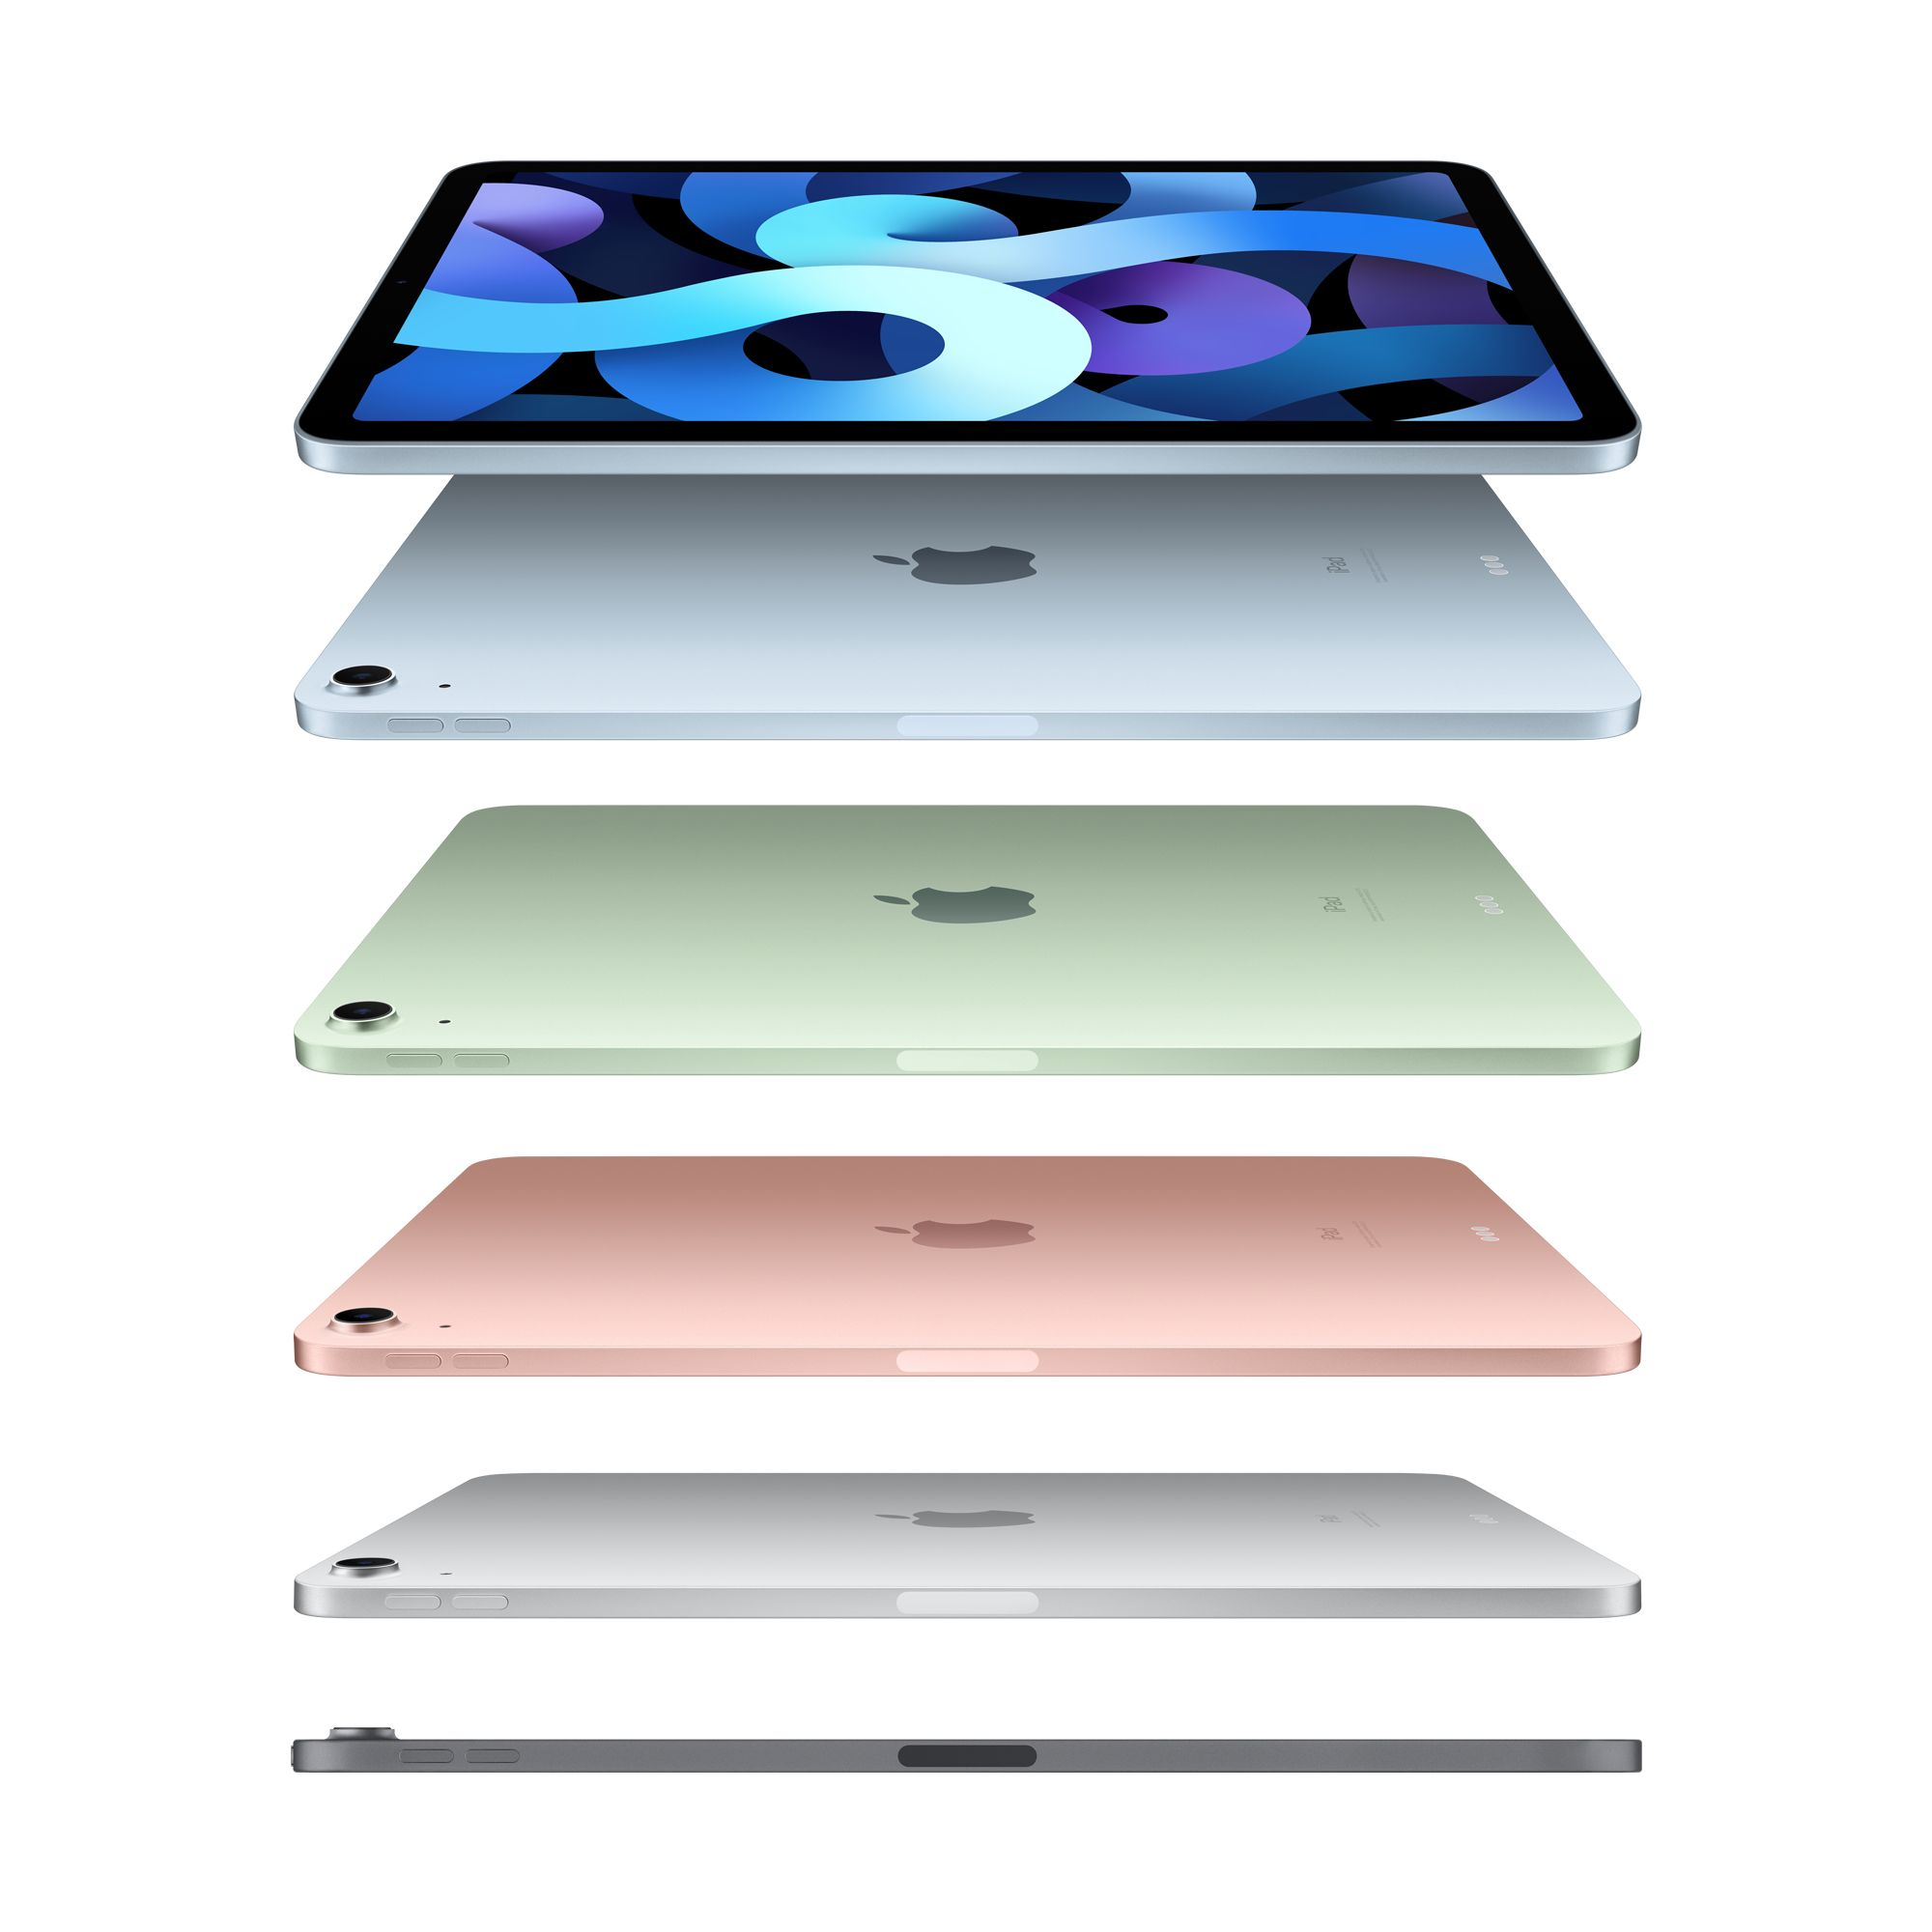 Buy iPad Air - Apple, Apple event 2020 announcements